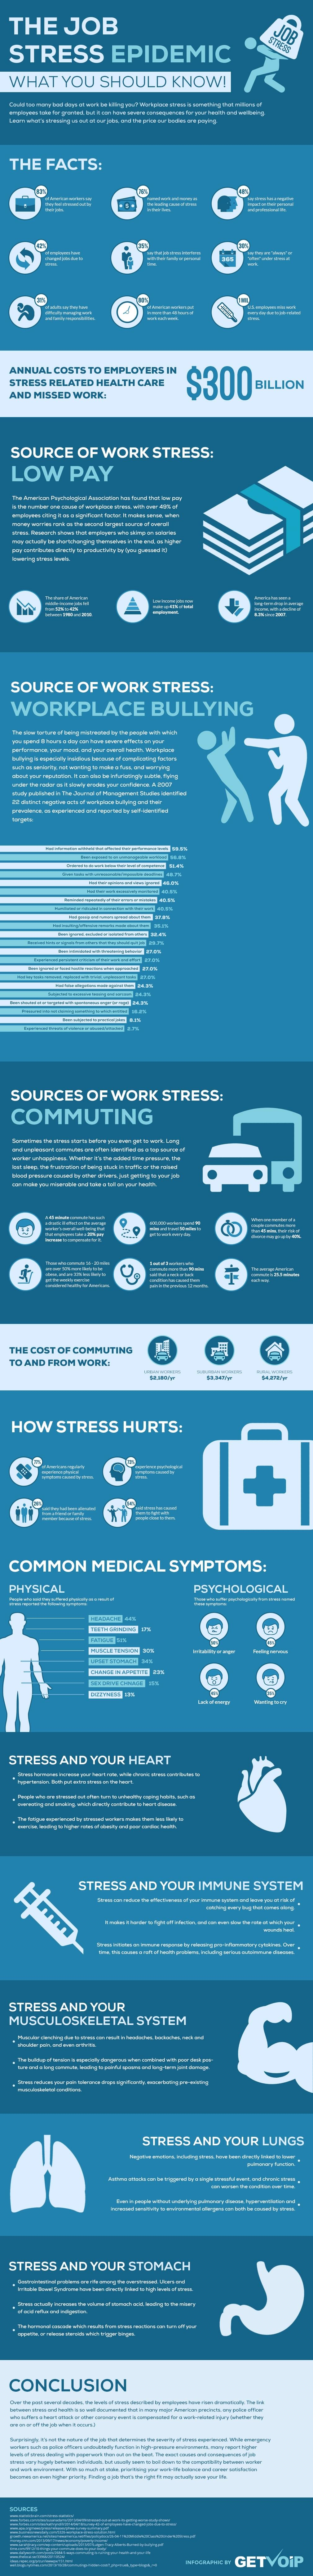 The Job Stress Epidemic Is Making Us Sick, Here 's What You Need To Know! [Infographic]